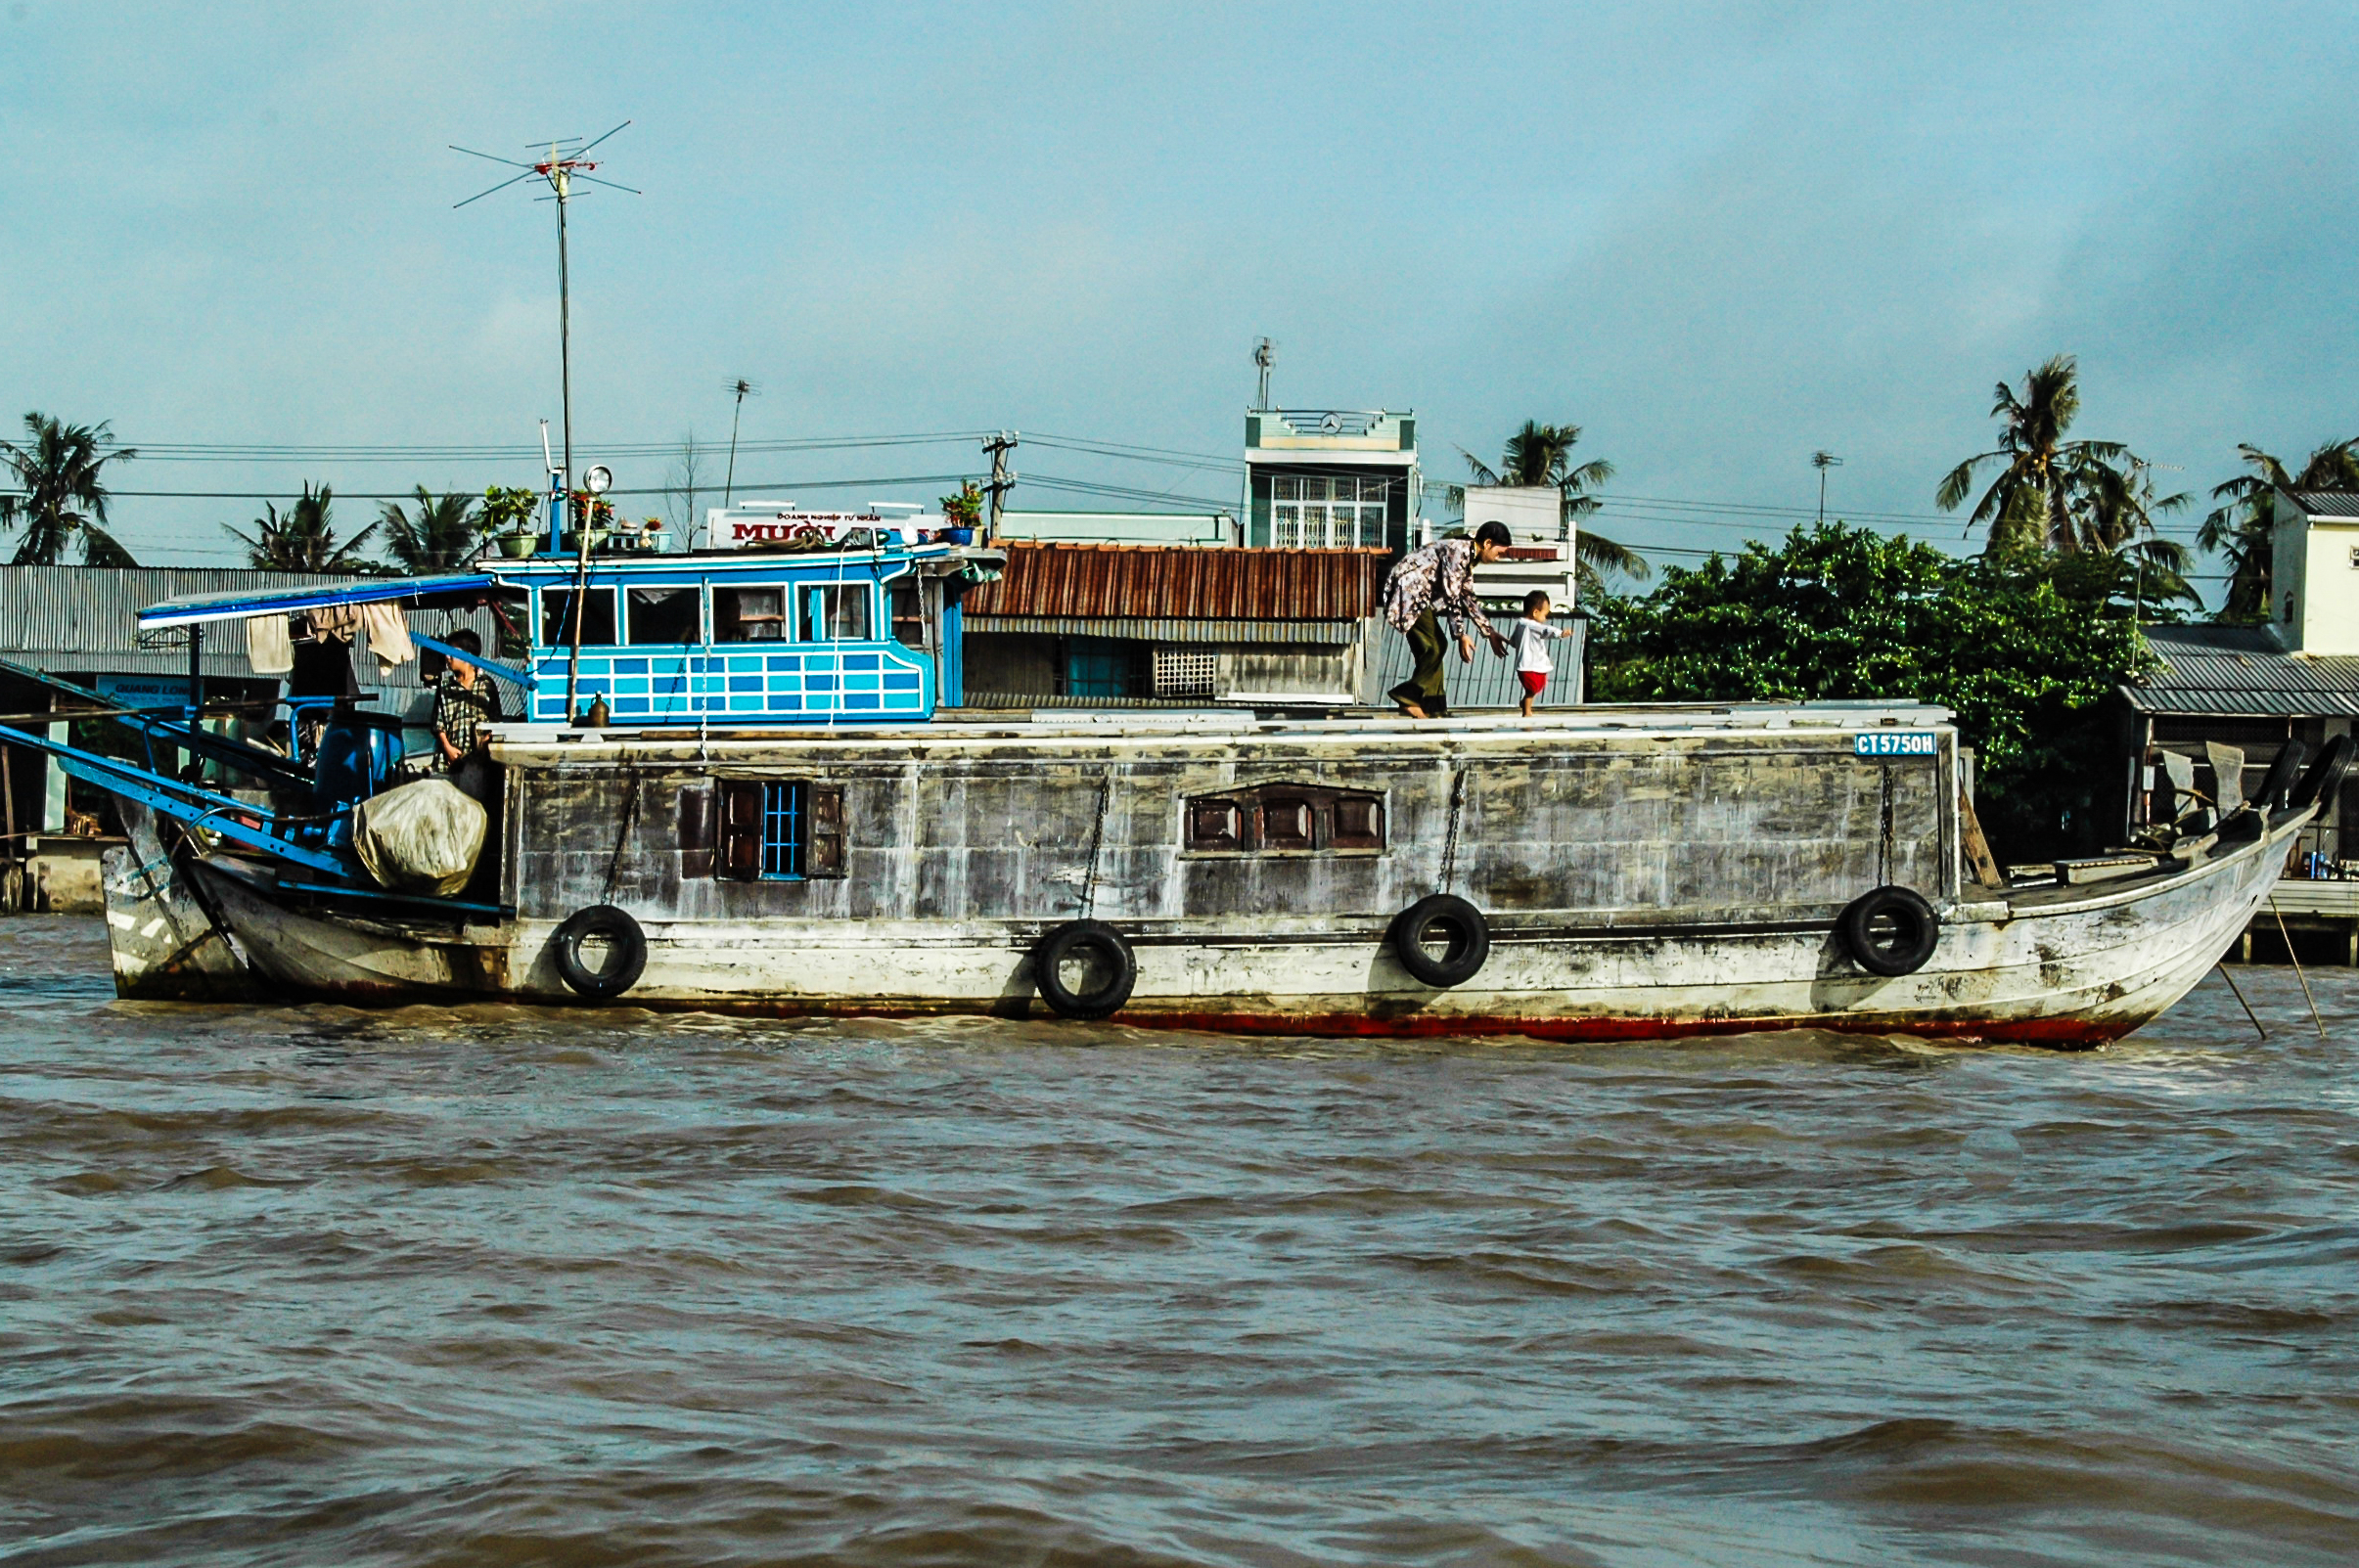 LifeontheMekongDelta-13.jpg